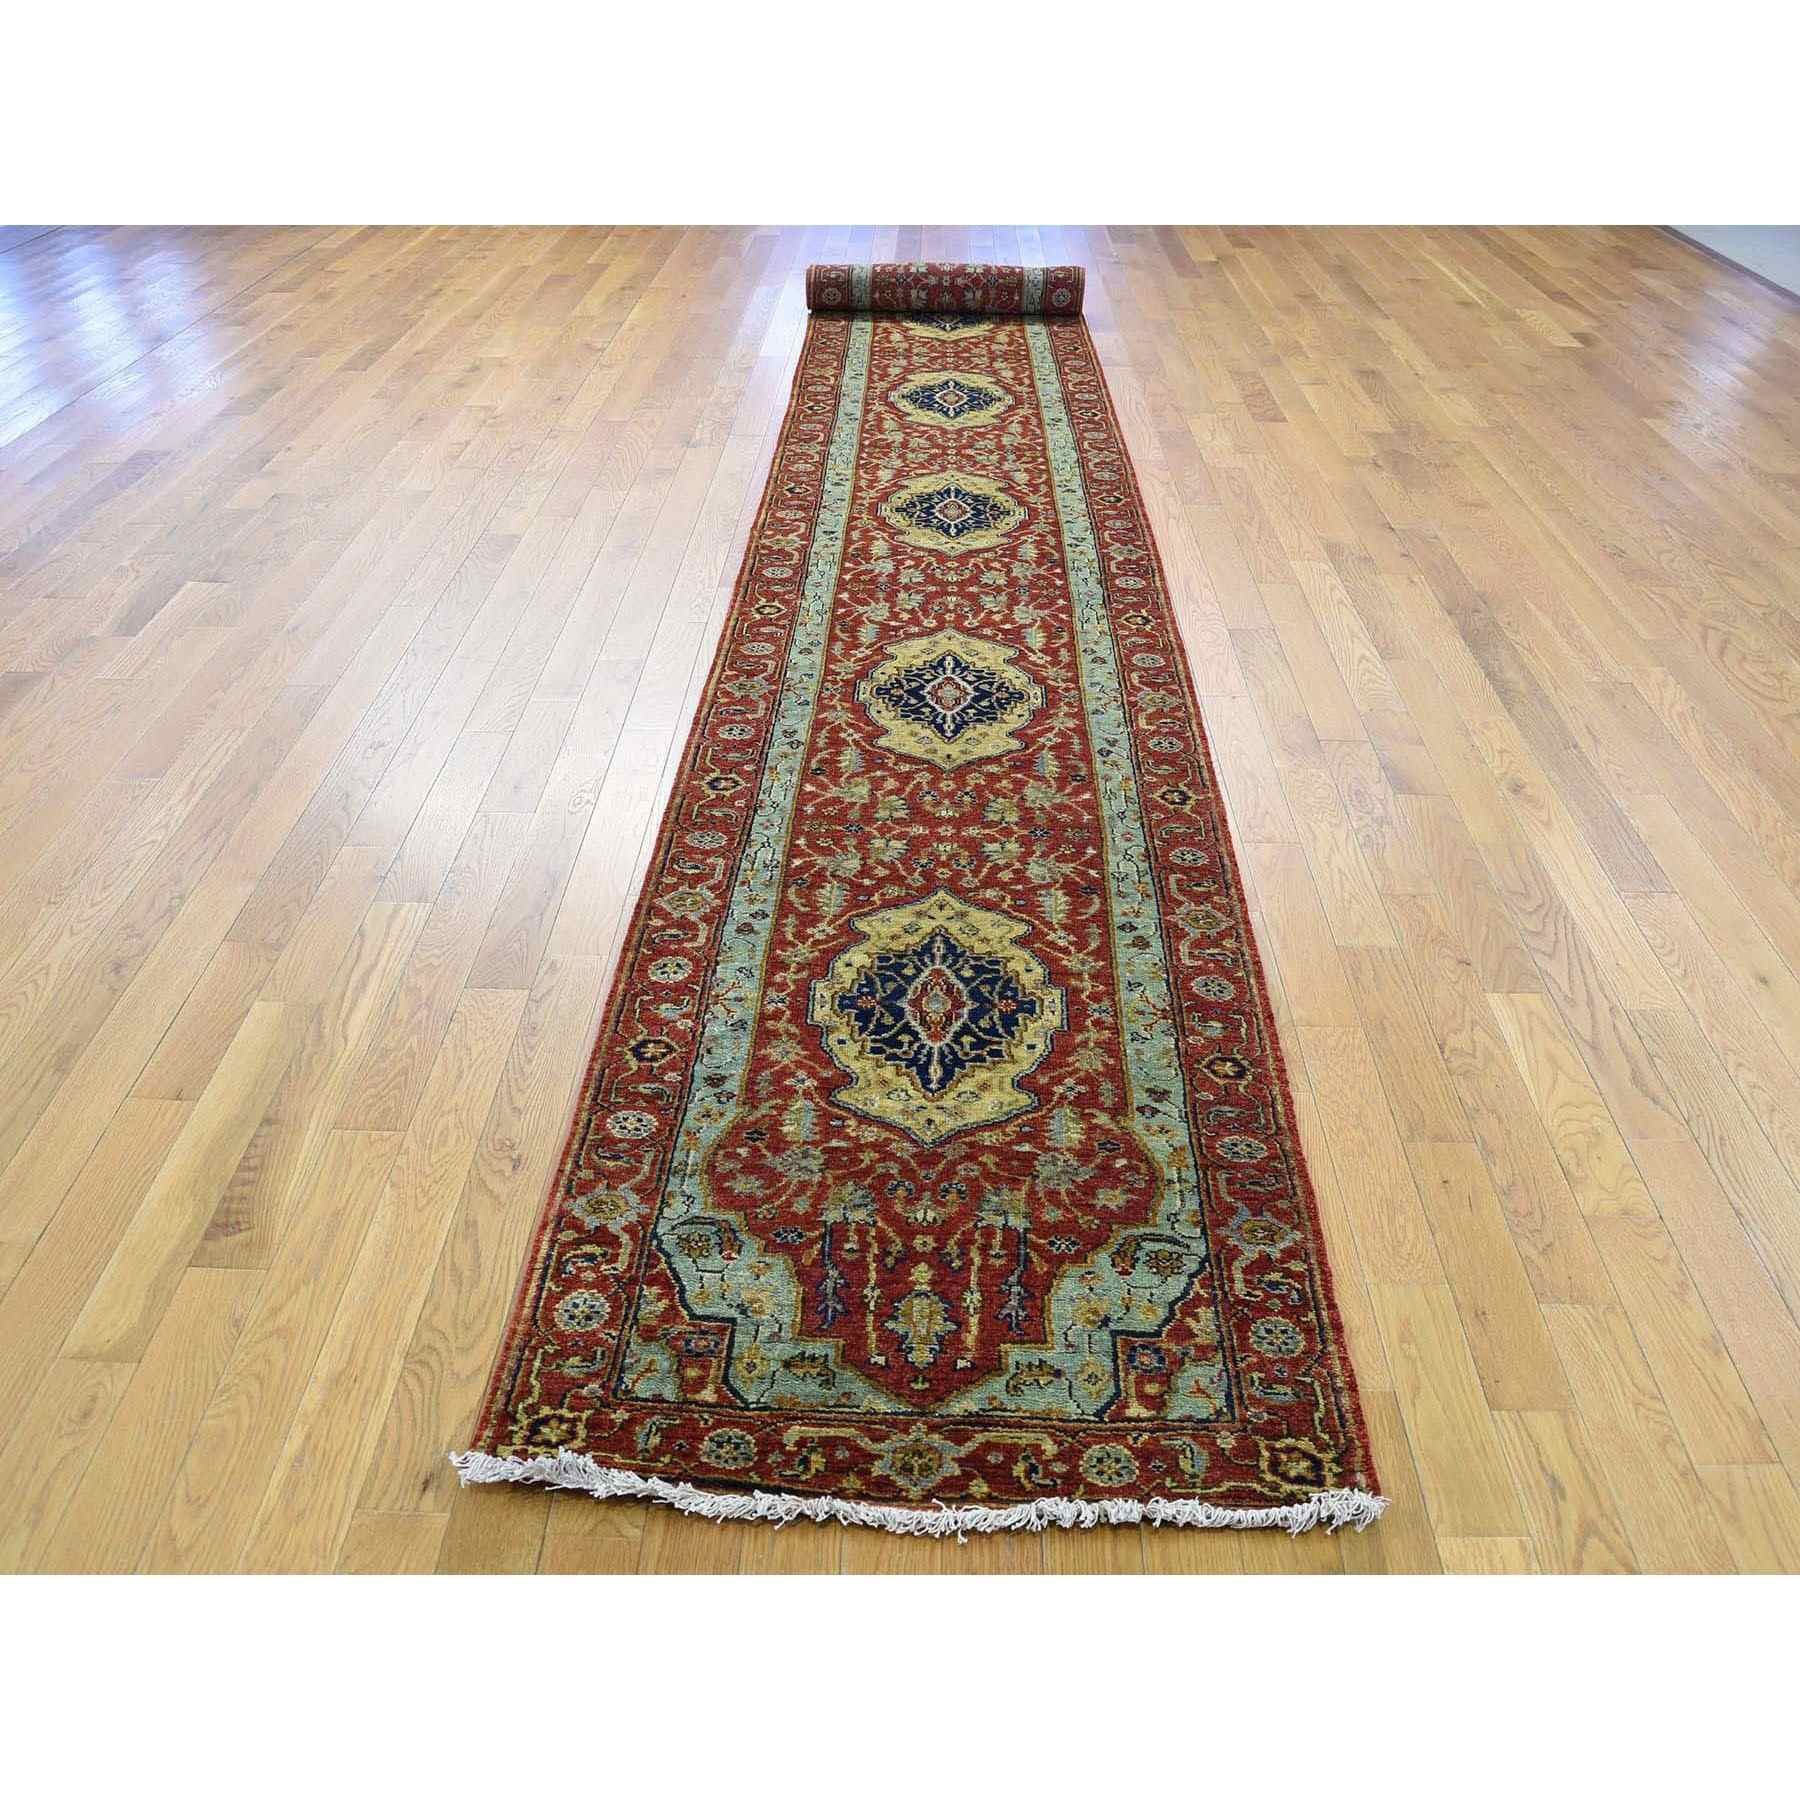 Heriz-Hand-Knotted-Rug-234920